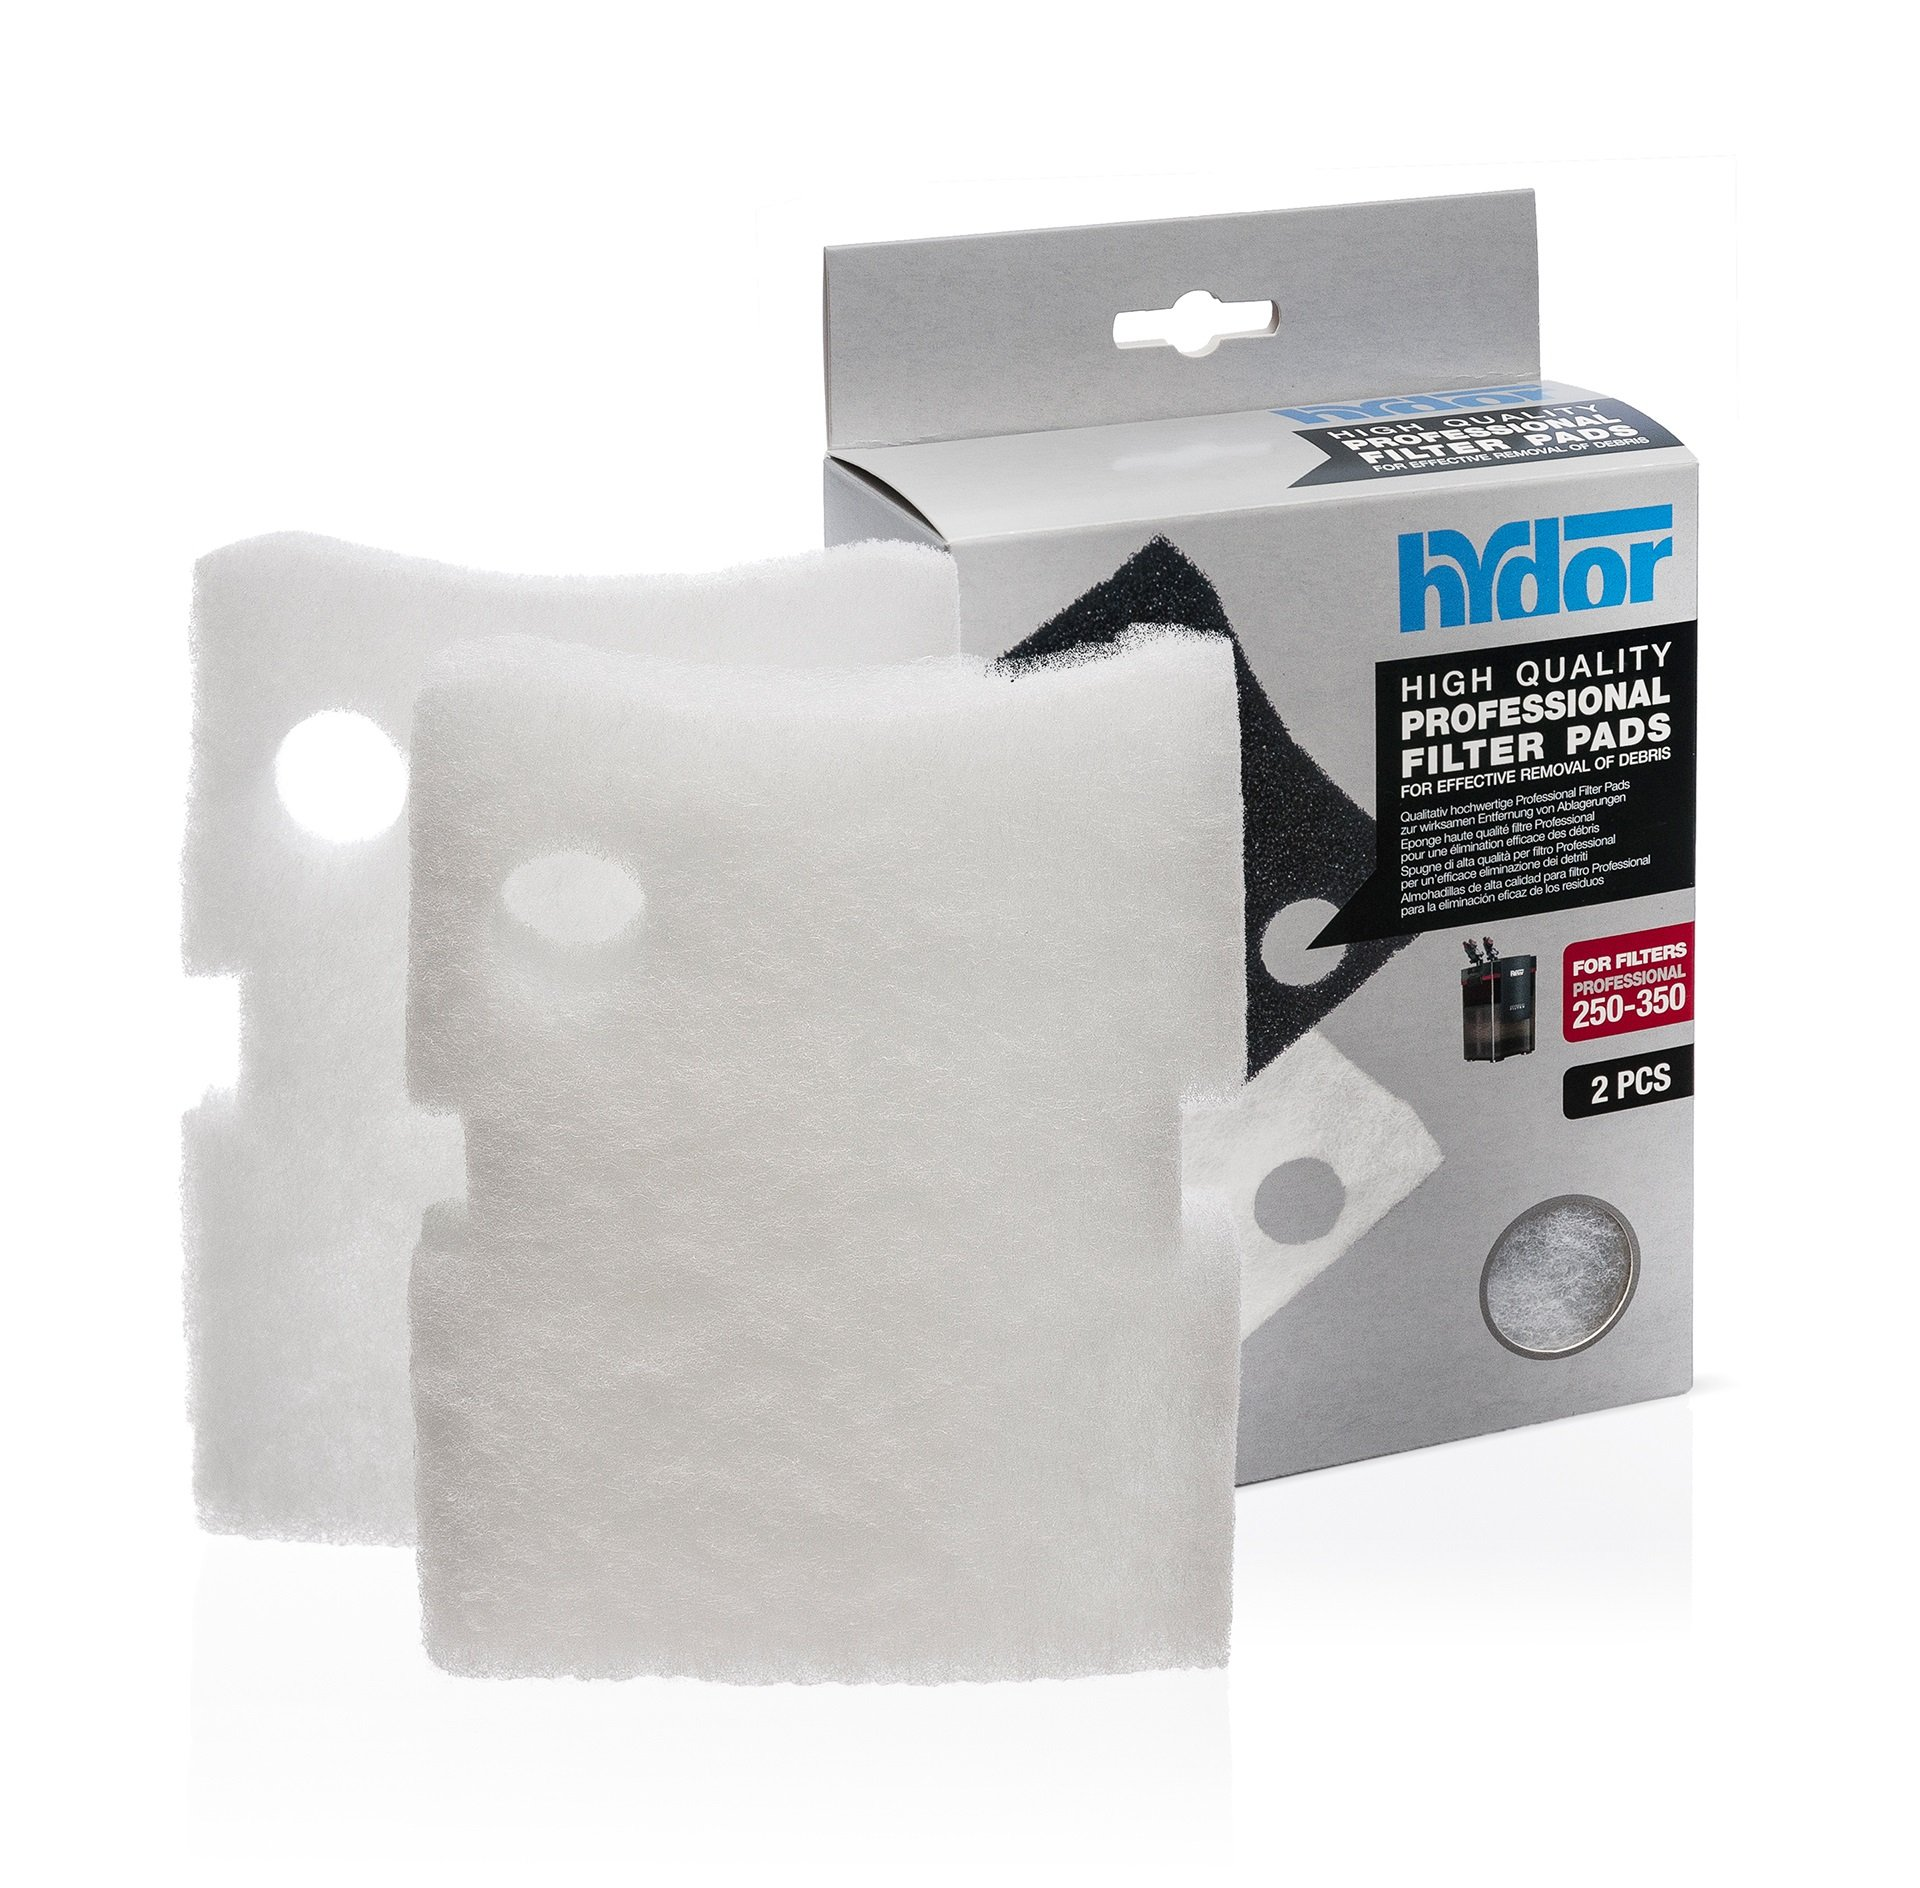 Hydor Professional External Canister Filter Media, 2 pk, Medium, White Pad, Fits 250/350